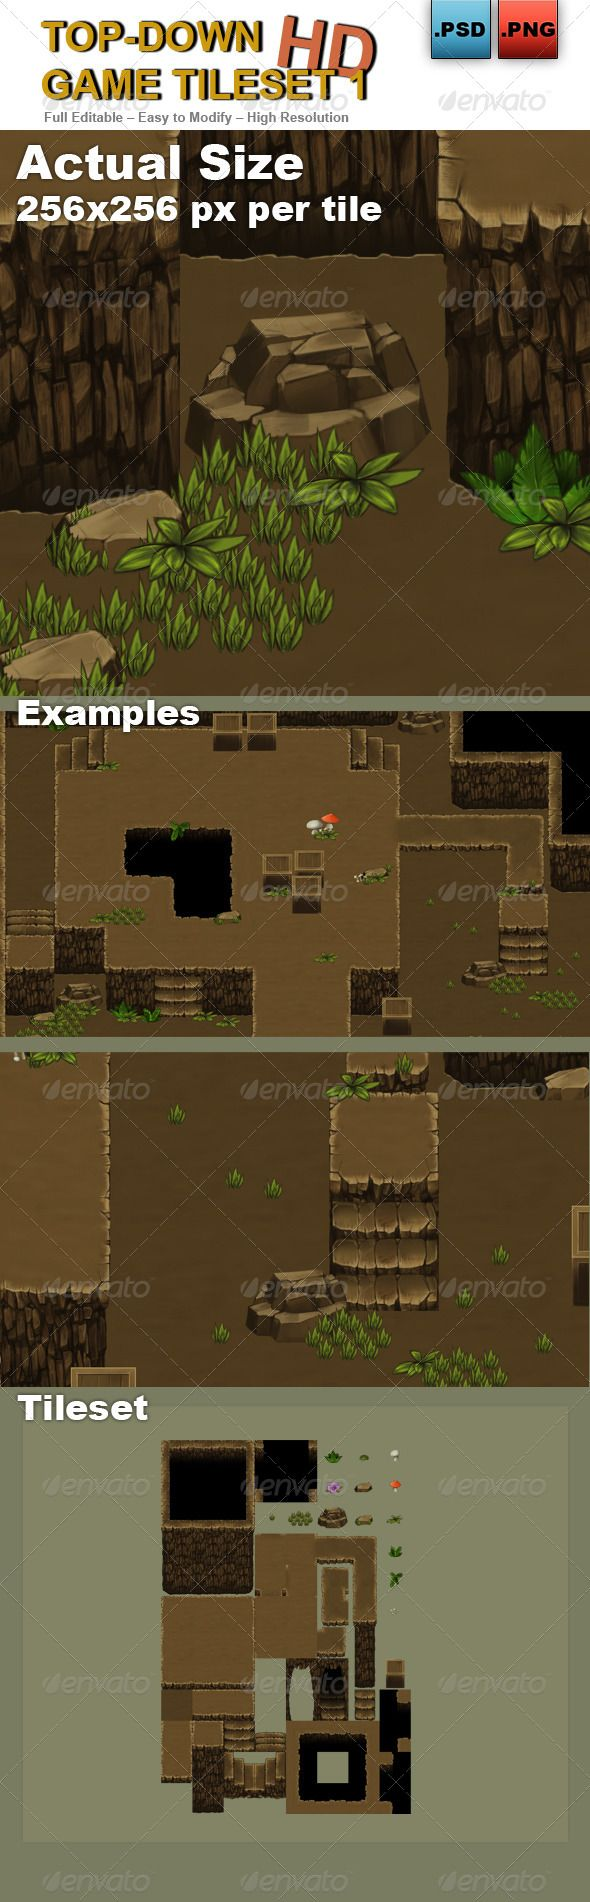 Top-Down Game Tileset 1 HD